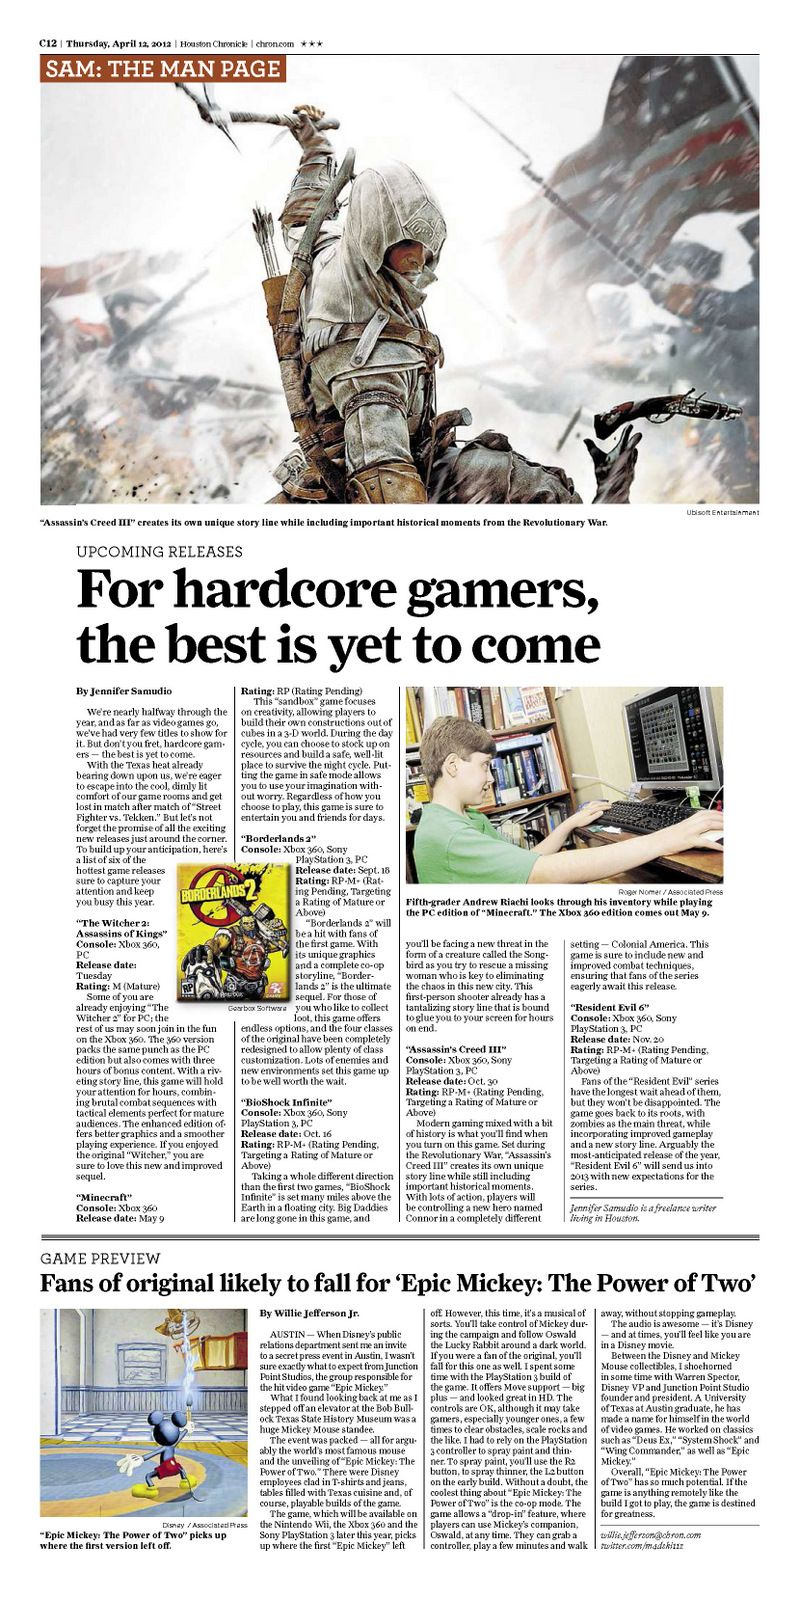 """""""Epic Mickey: The Power of Two"""" article on the Man Page, Houston Chronicle, 04.12.12"""